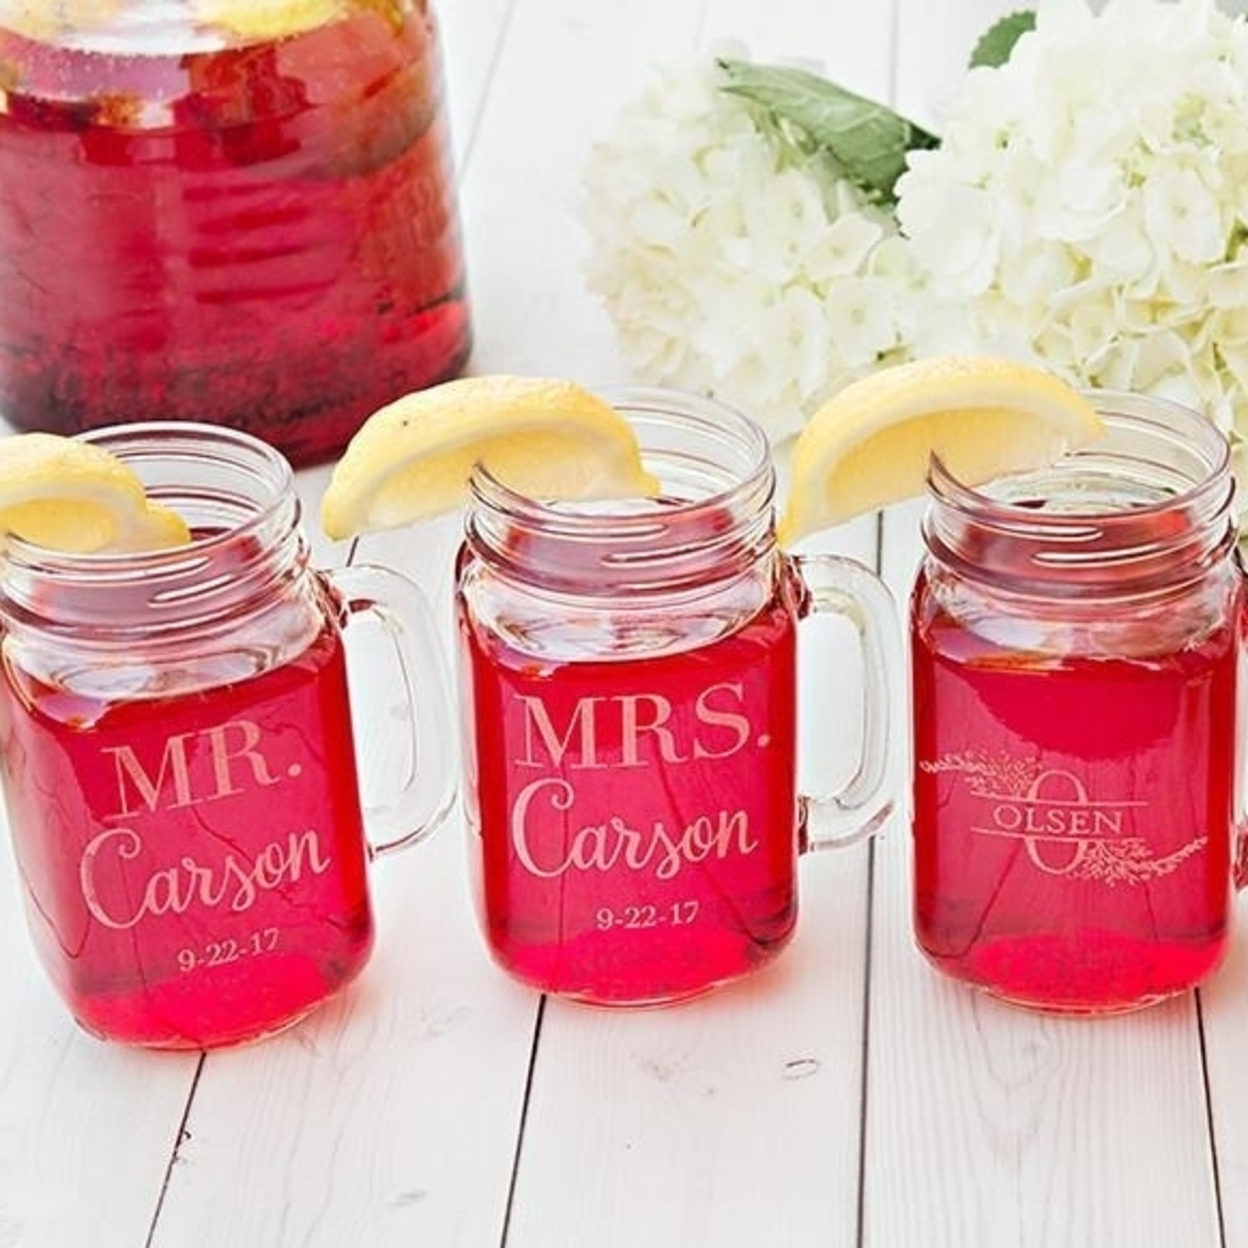 Personalized Mason Jar Mugs - Brock 5984e959f486b70a921694ae